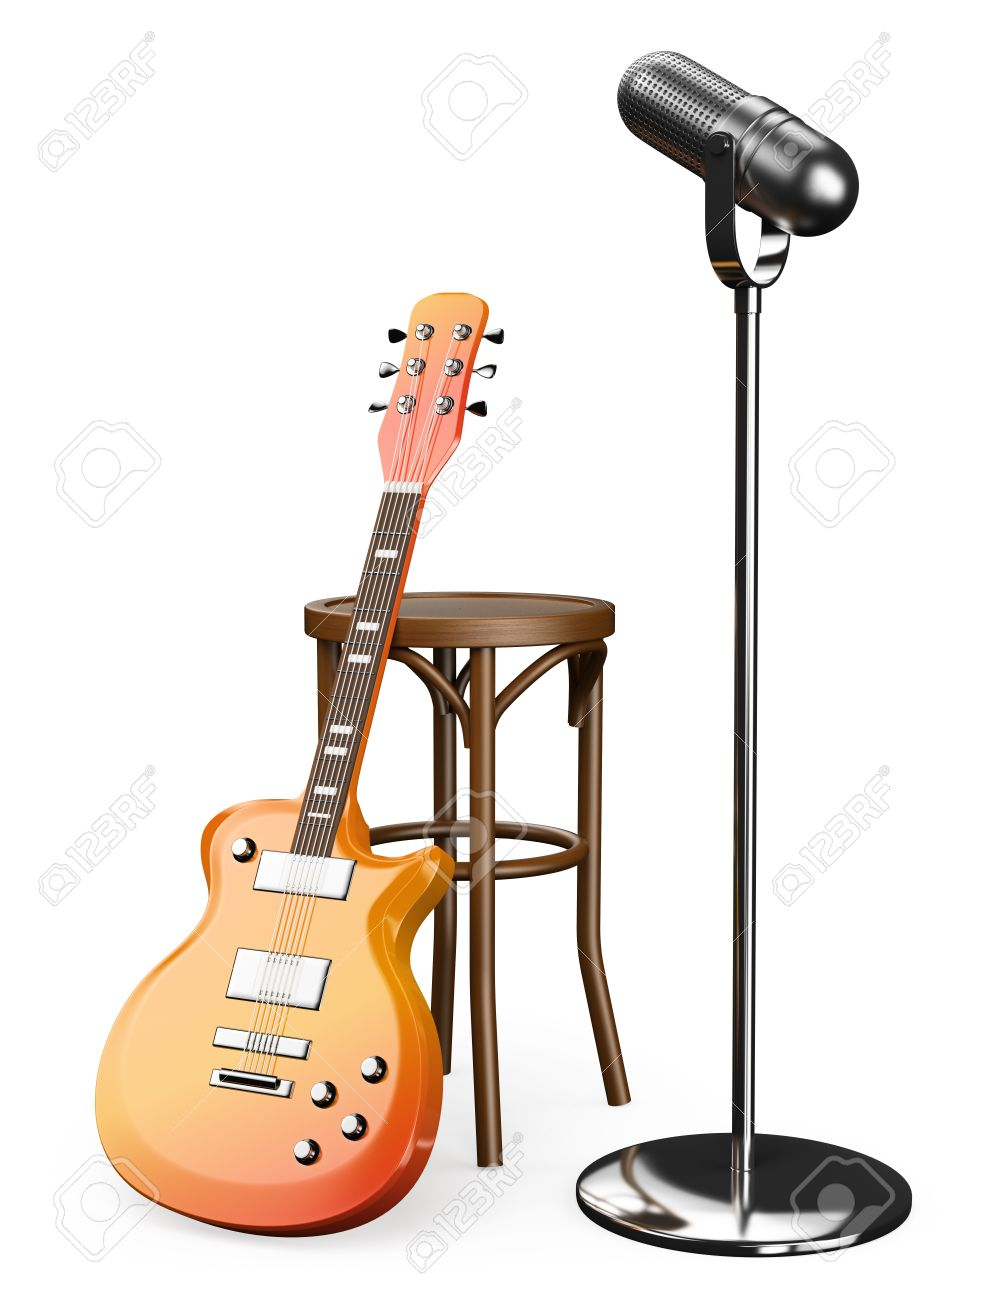 3D Electric guitar stool and microphone. Isolated white background. Stock Photo - 31168253  sc 1 st  123RF Stock Photos & 3D Electric Guitar Stool And Microphone. Isolated White Background ... islam-shia.org